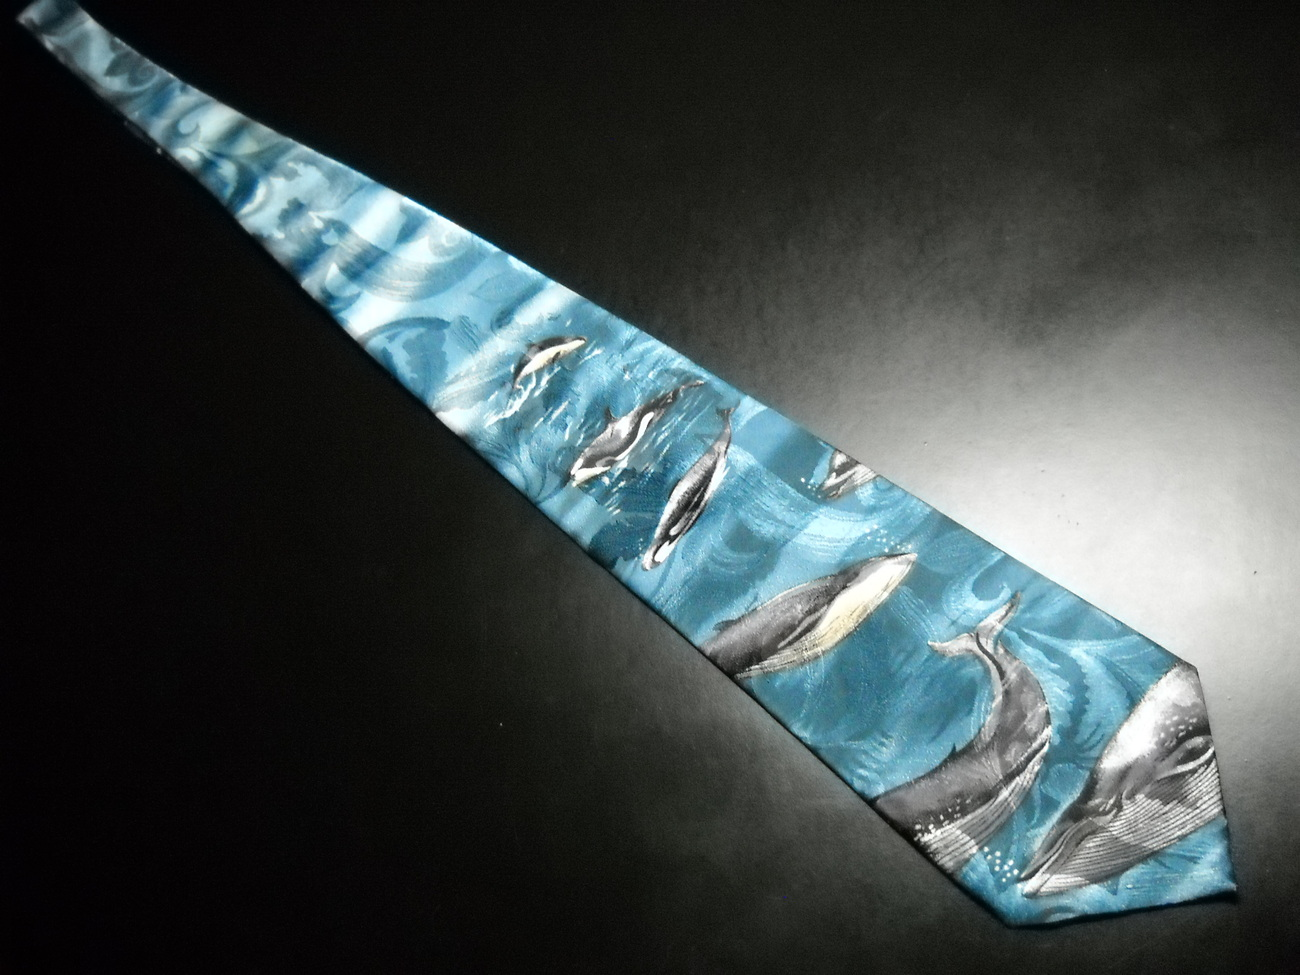 Reed St James Dress Polyester Neck Tie Pod Whales Capering Swirling Blues Ocean